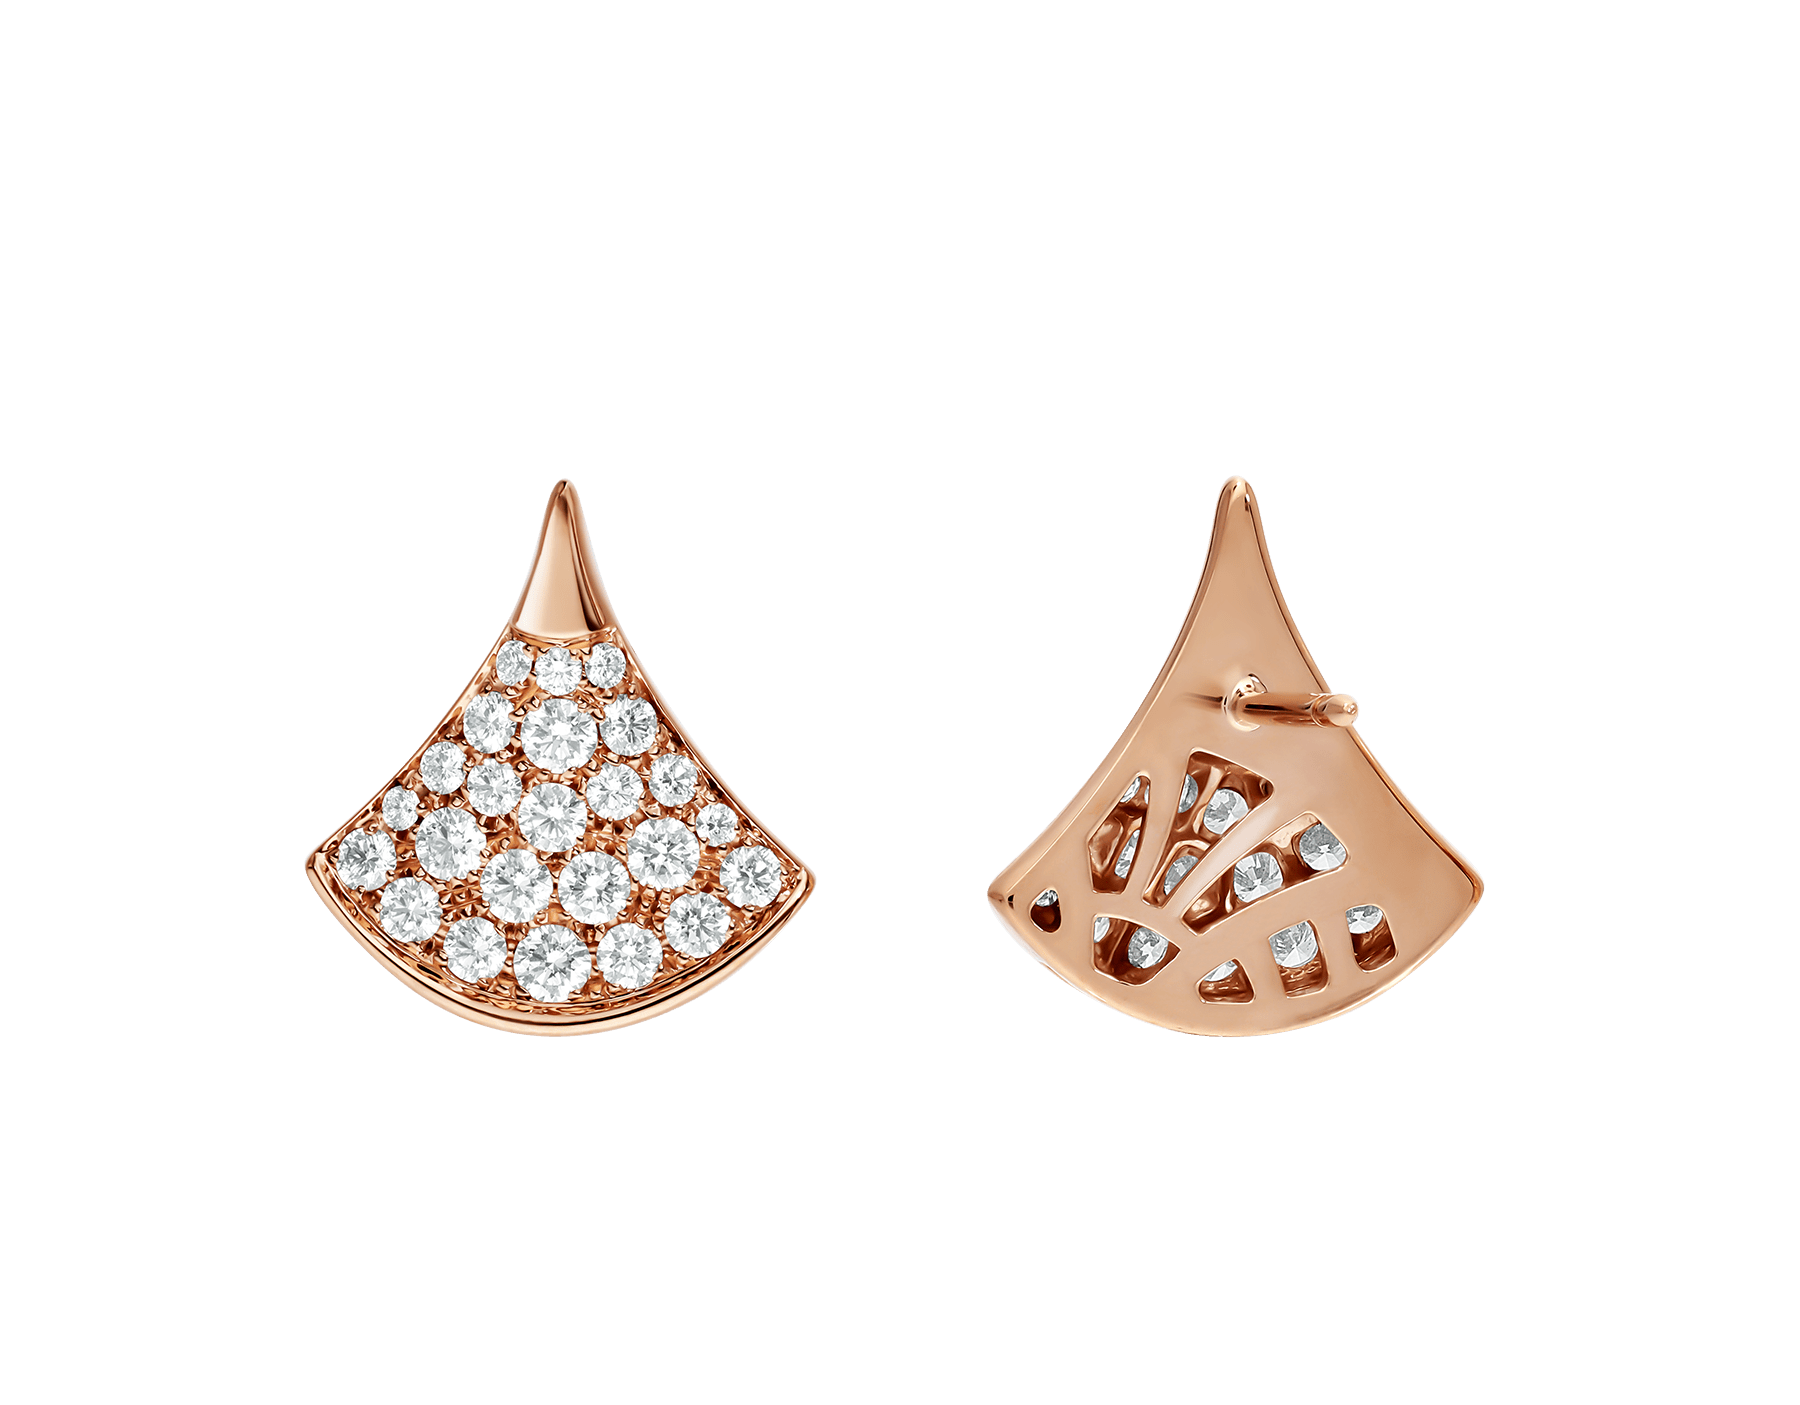 DIVAS' DREAM stud earrings in 18 kt rose gold, set with pavé diamonds (0.90 ct). 352601 image 3